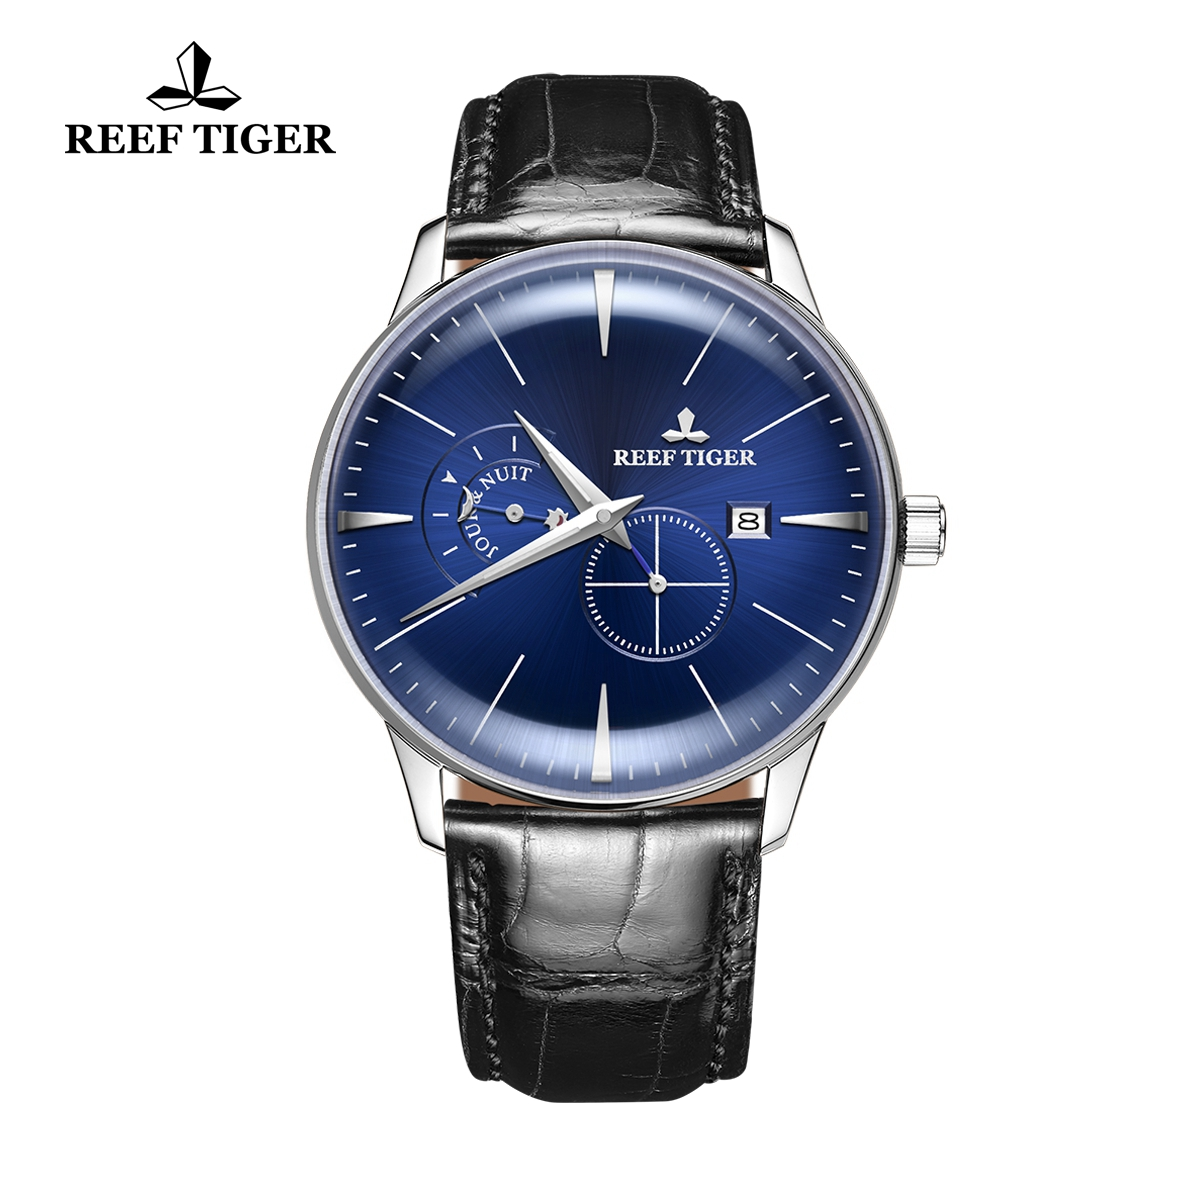 Reef Tiger Classic Artisan Men's Fashion Watch Blue Dial Leather Strap Automatic Watches RGA8219-YLB